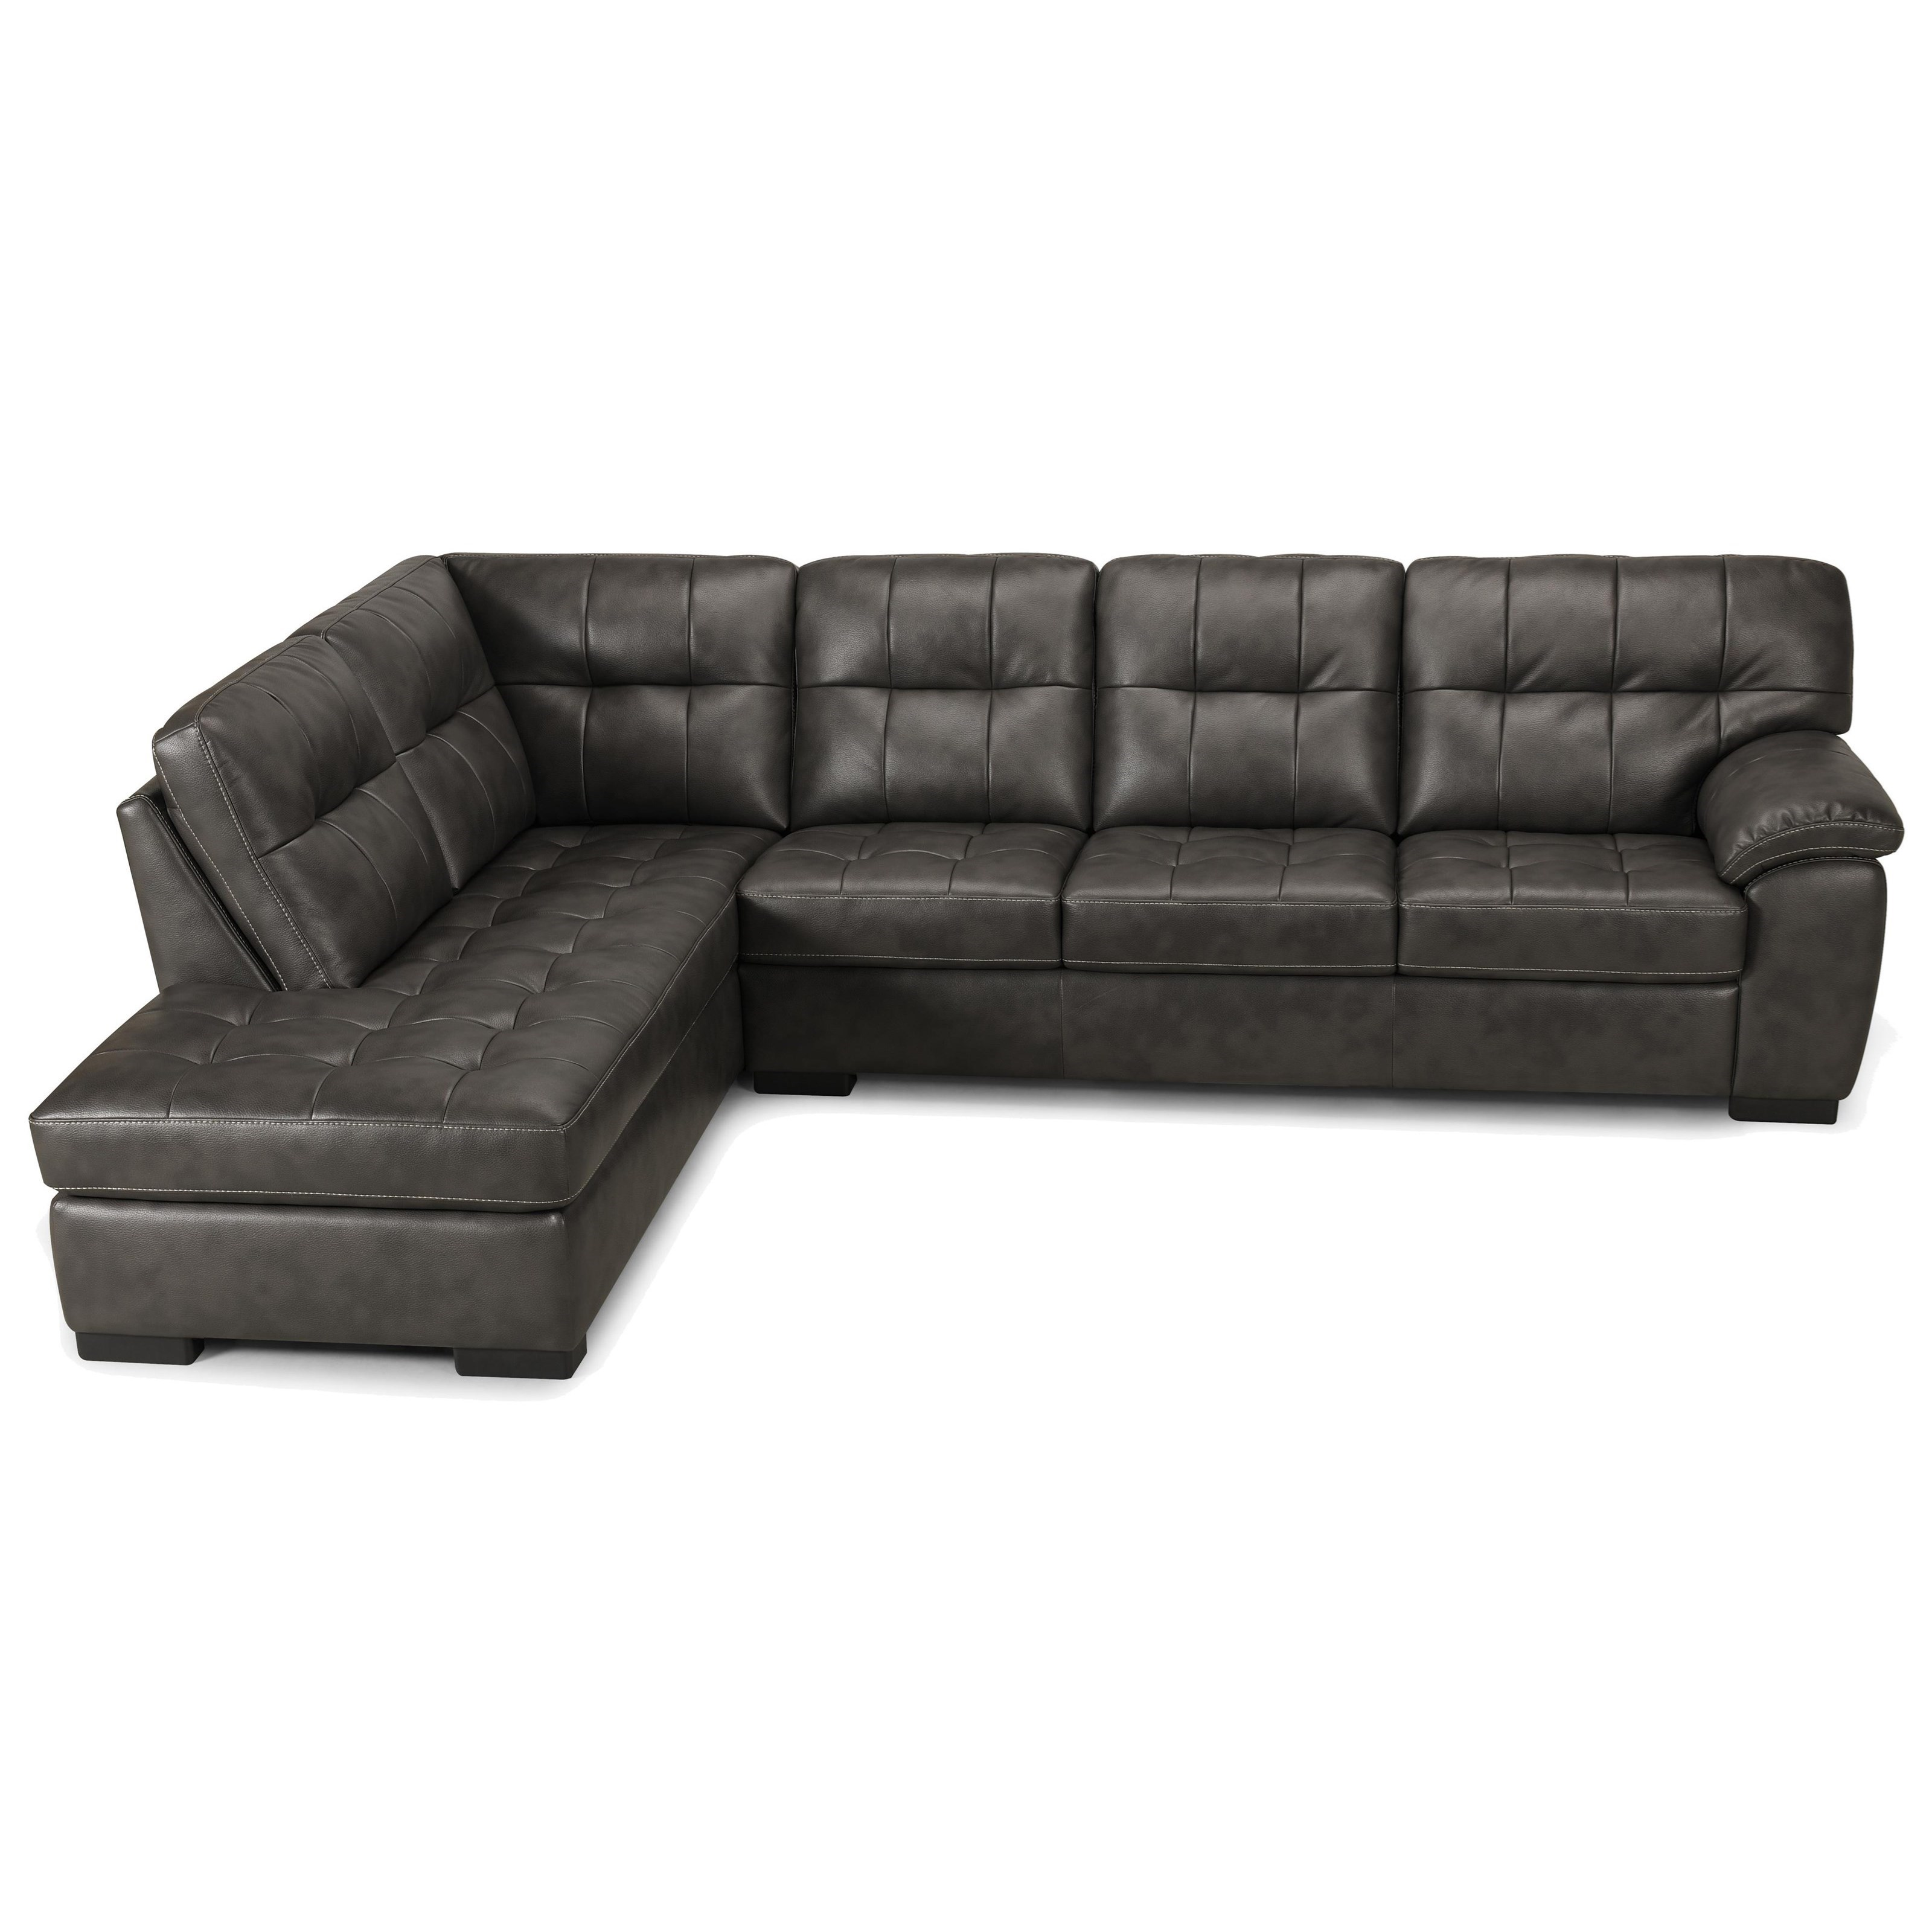 3638 2 Piece Sectional by Violino at Furniture Superstore - Rochester, MN